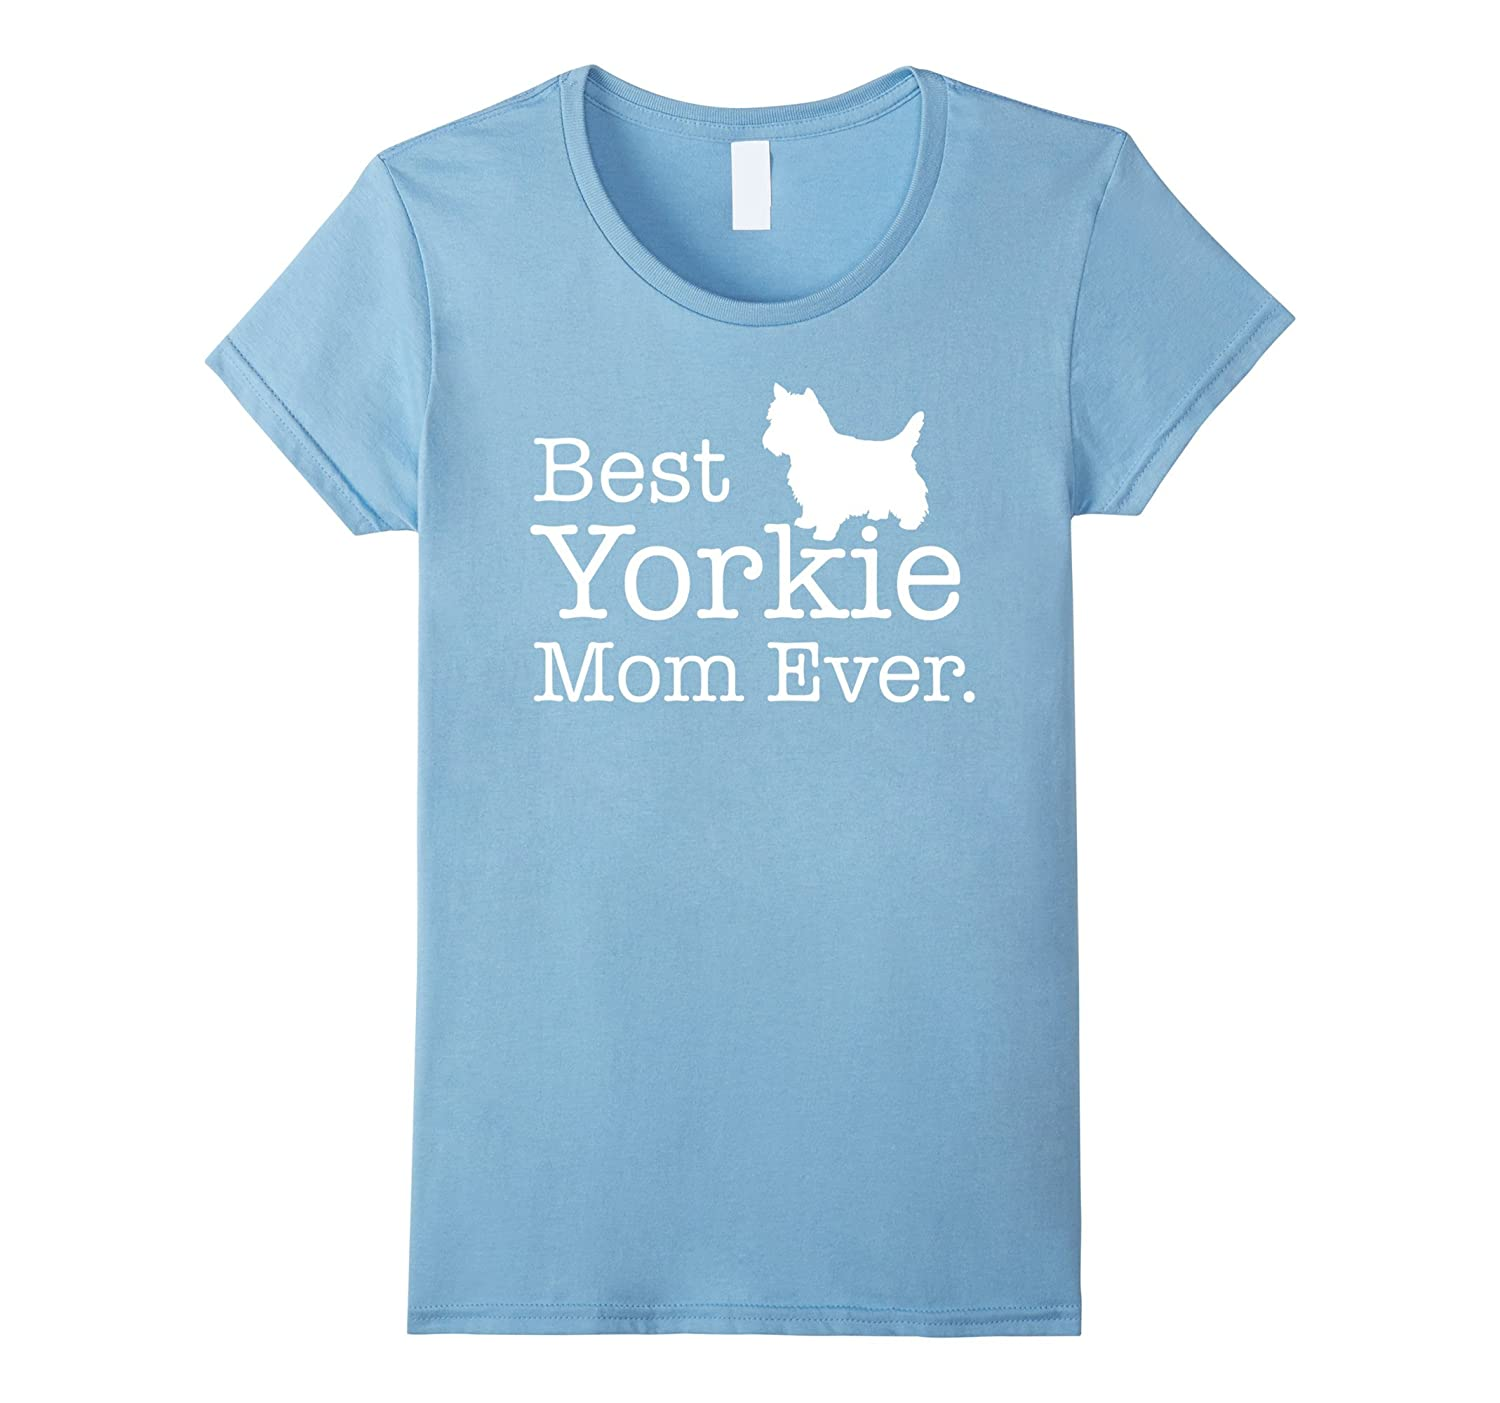 Best Yorkie Mom Ever T shirt Yorkie Gifts Shirt-CL